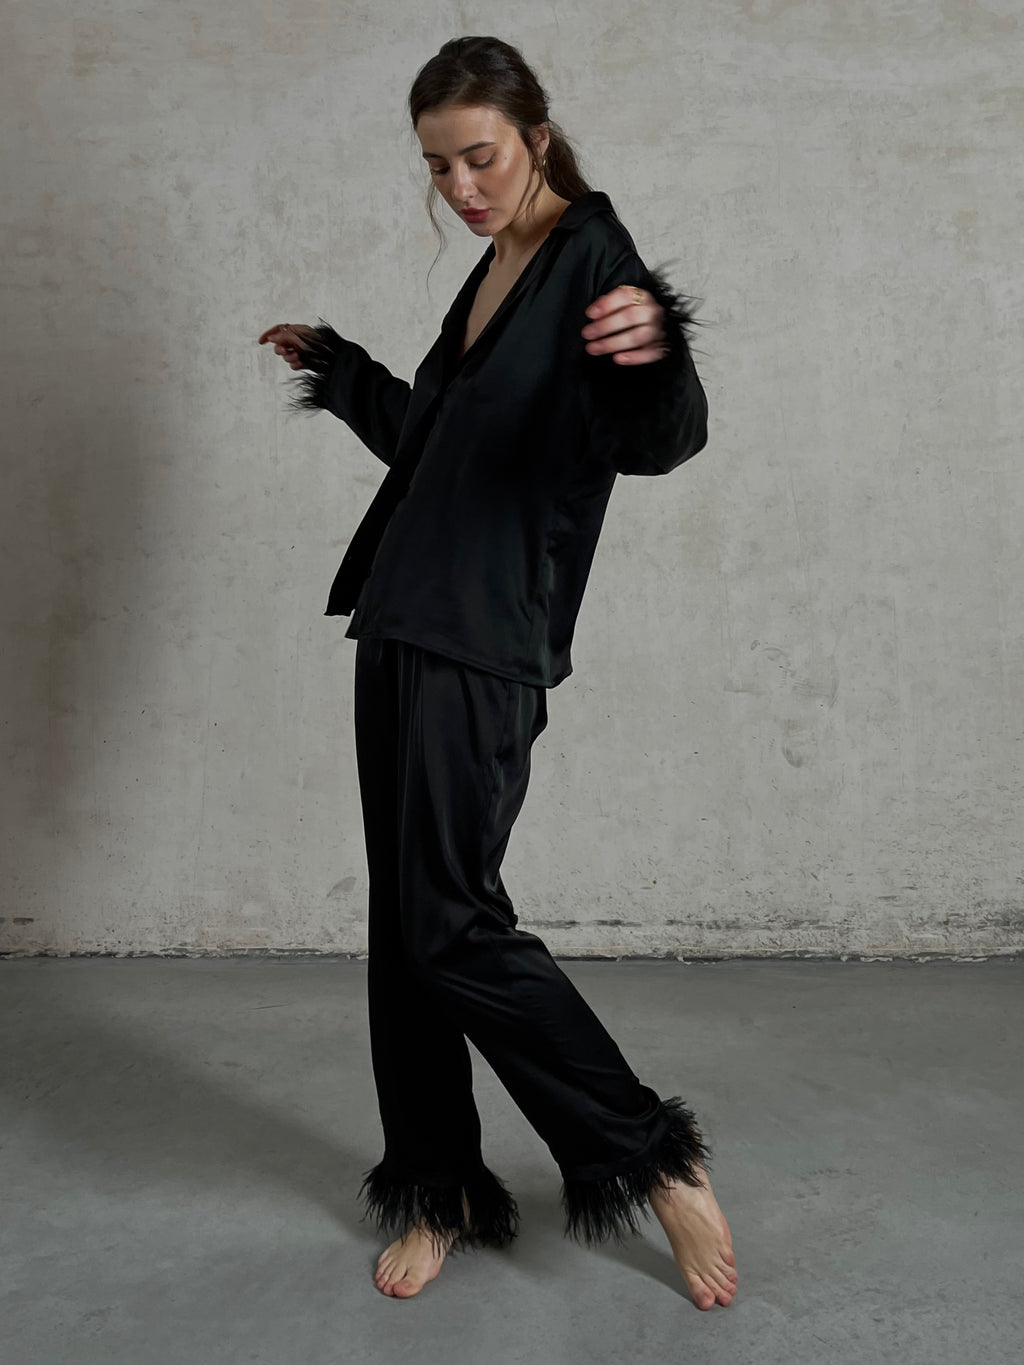 Black silky pajama suit with feathers - Okiya Studio | Sleepwear, Homewear, Lingerie, Home Textiles